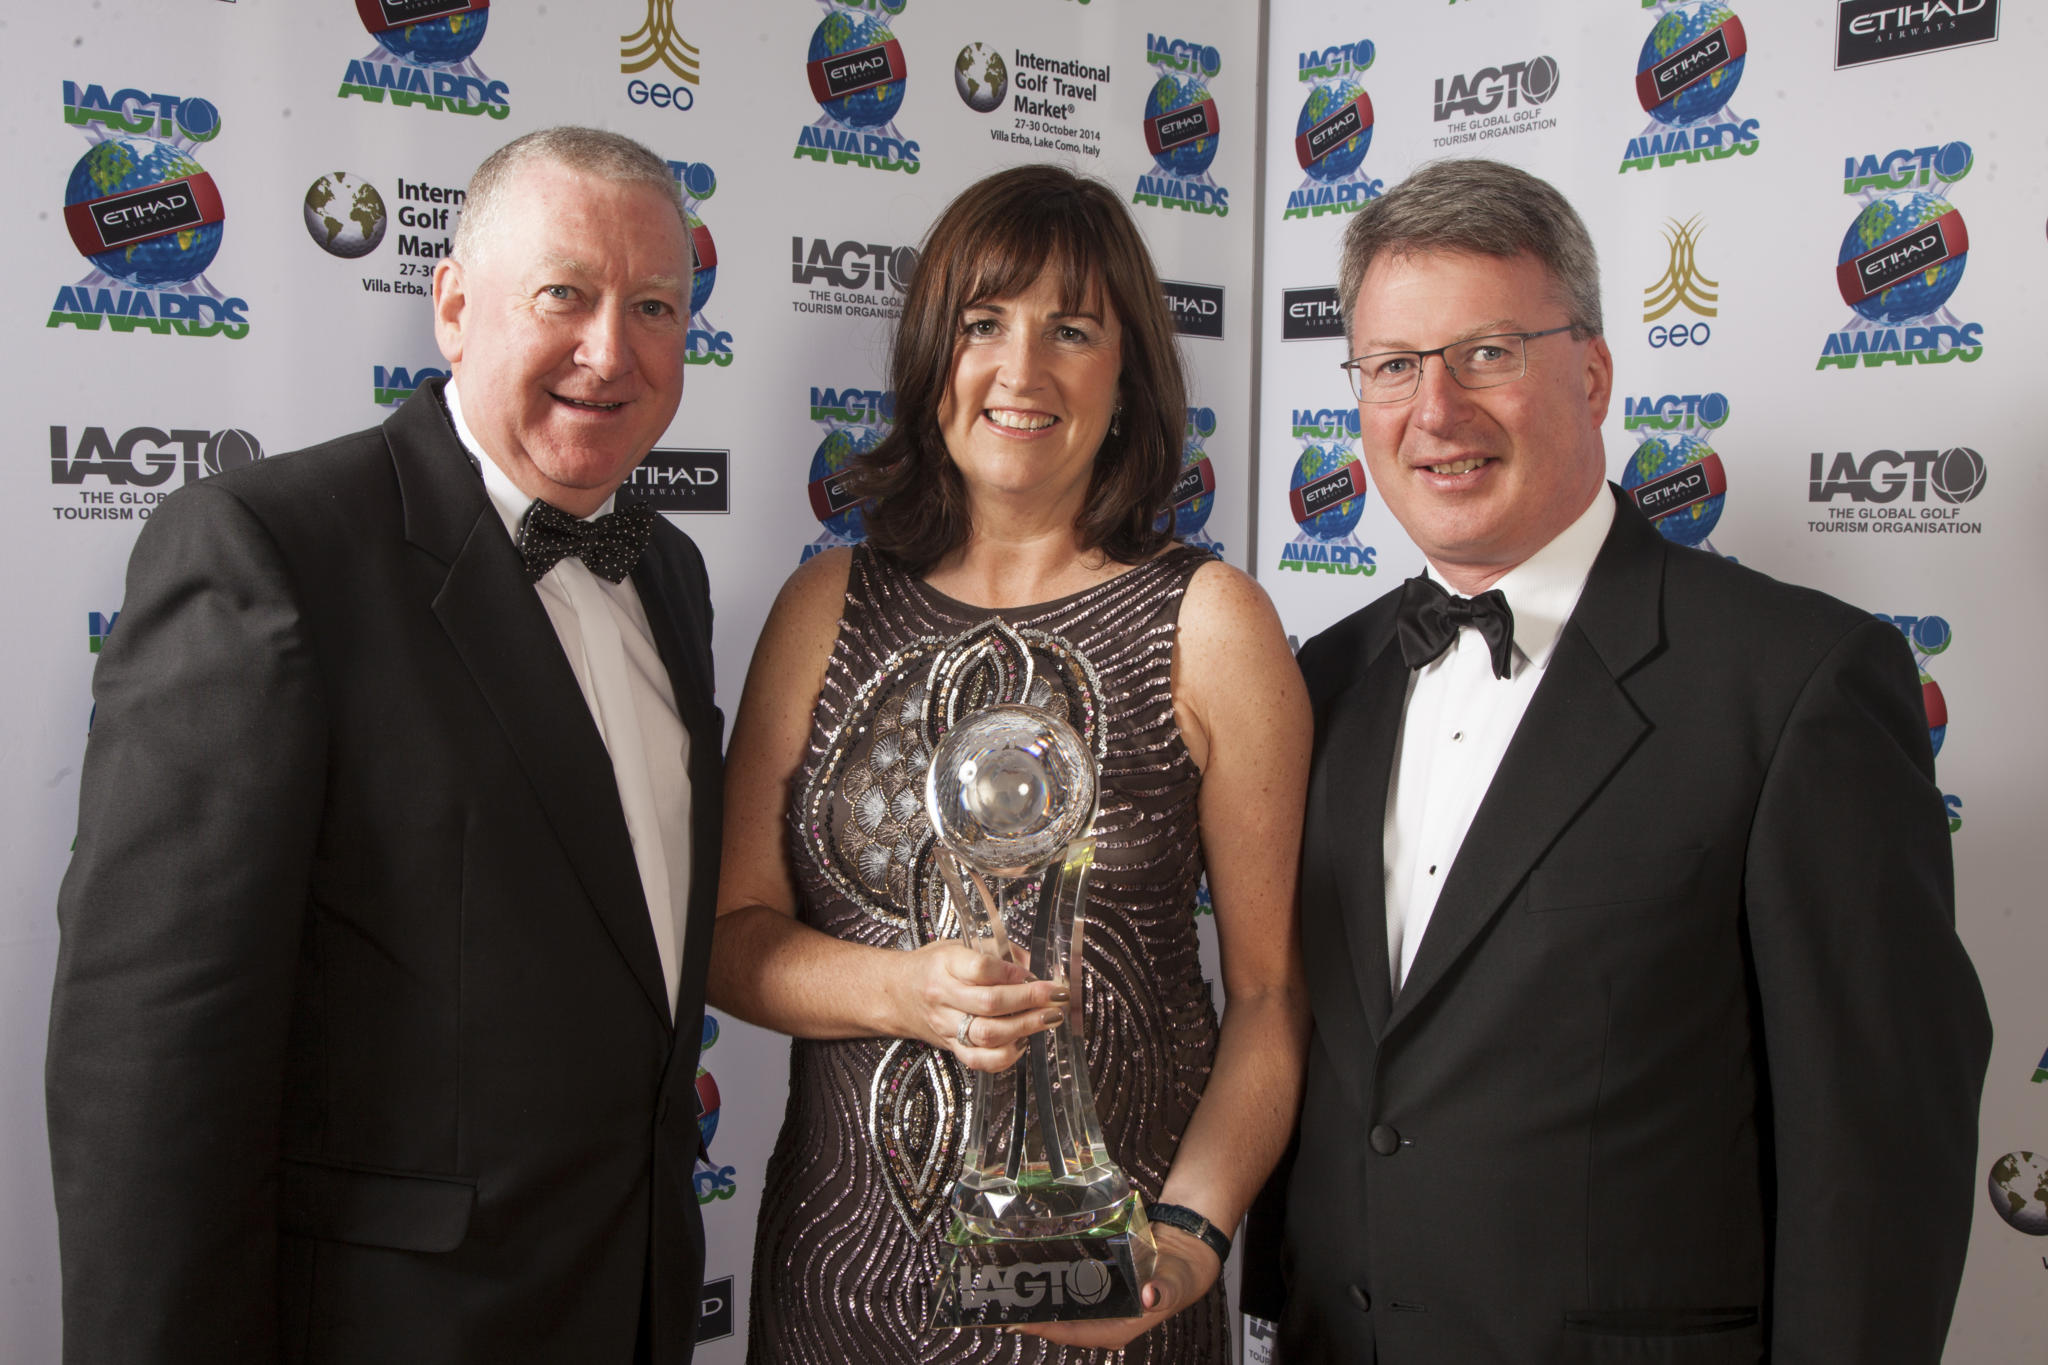 Powerscourt Golf Club among winners  of 'European Golf Destination of the Year'